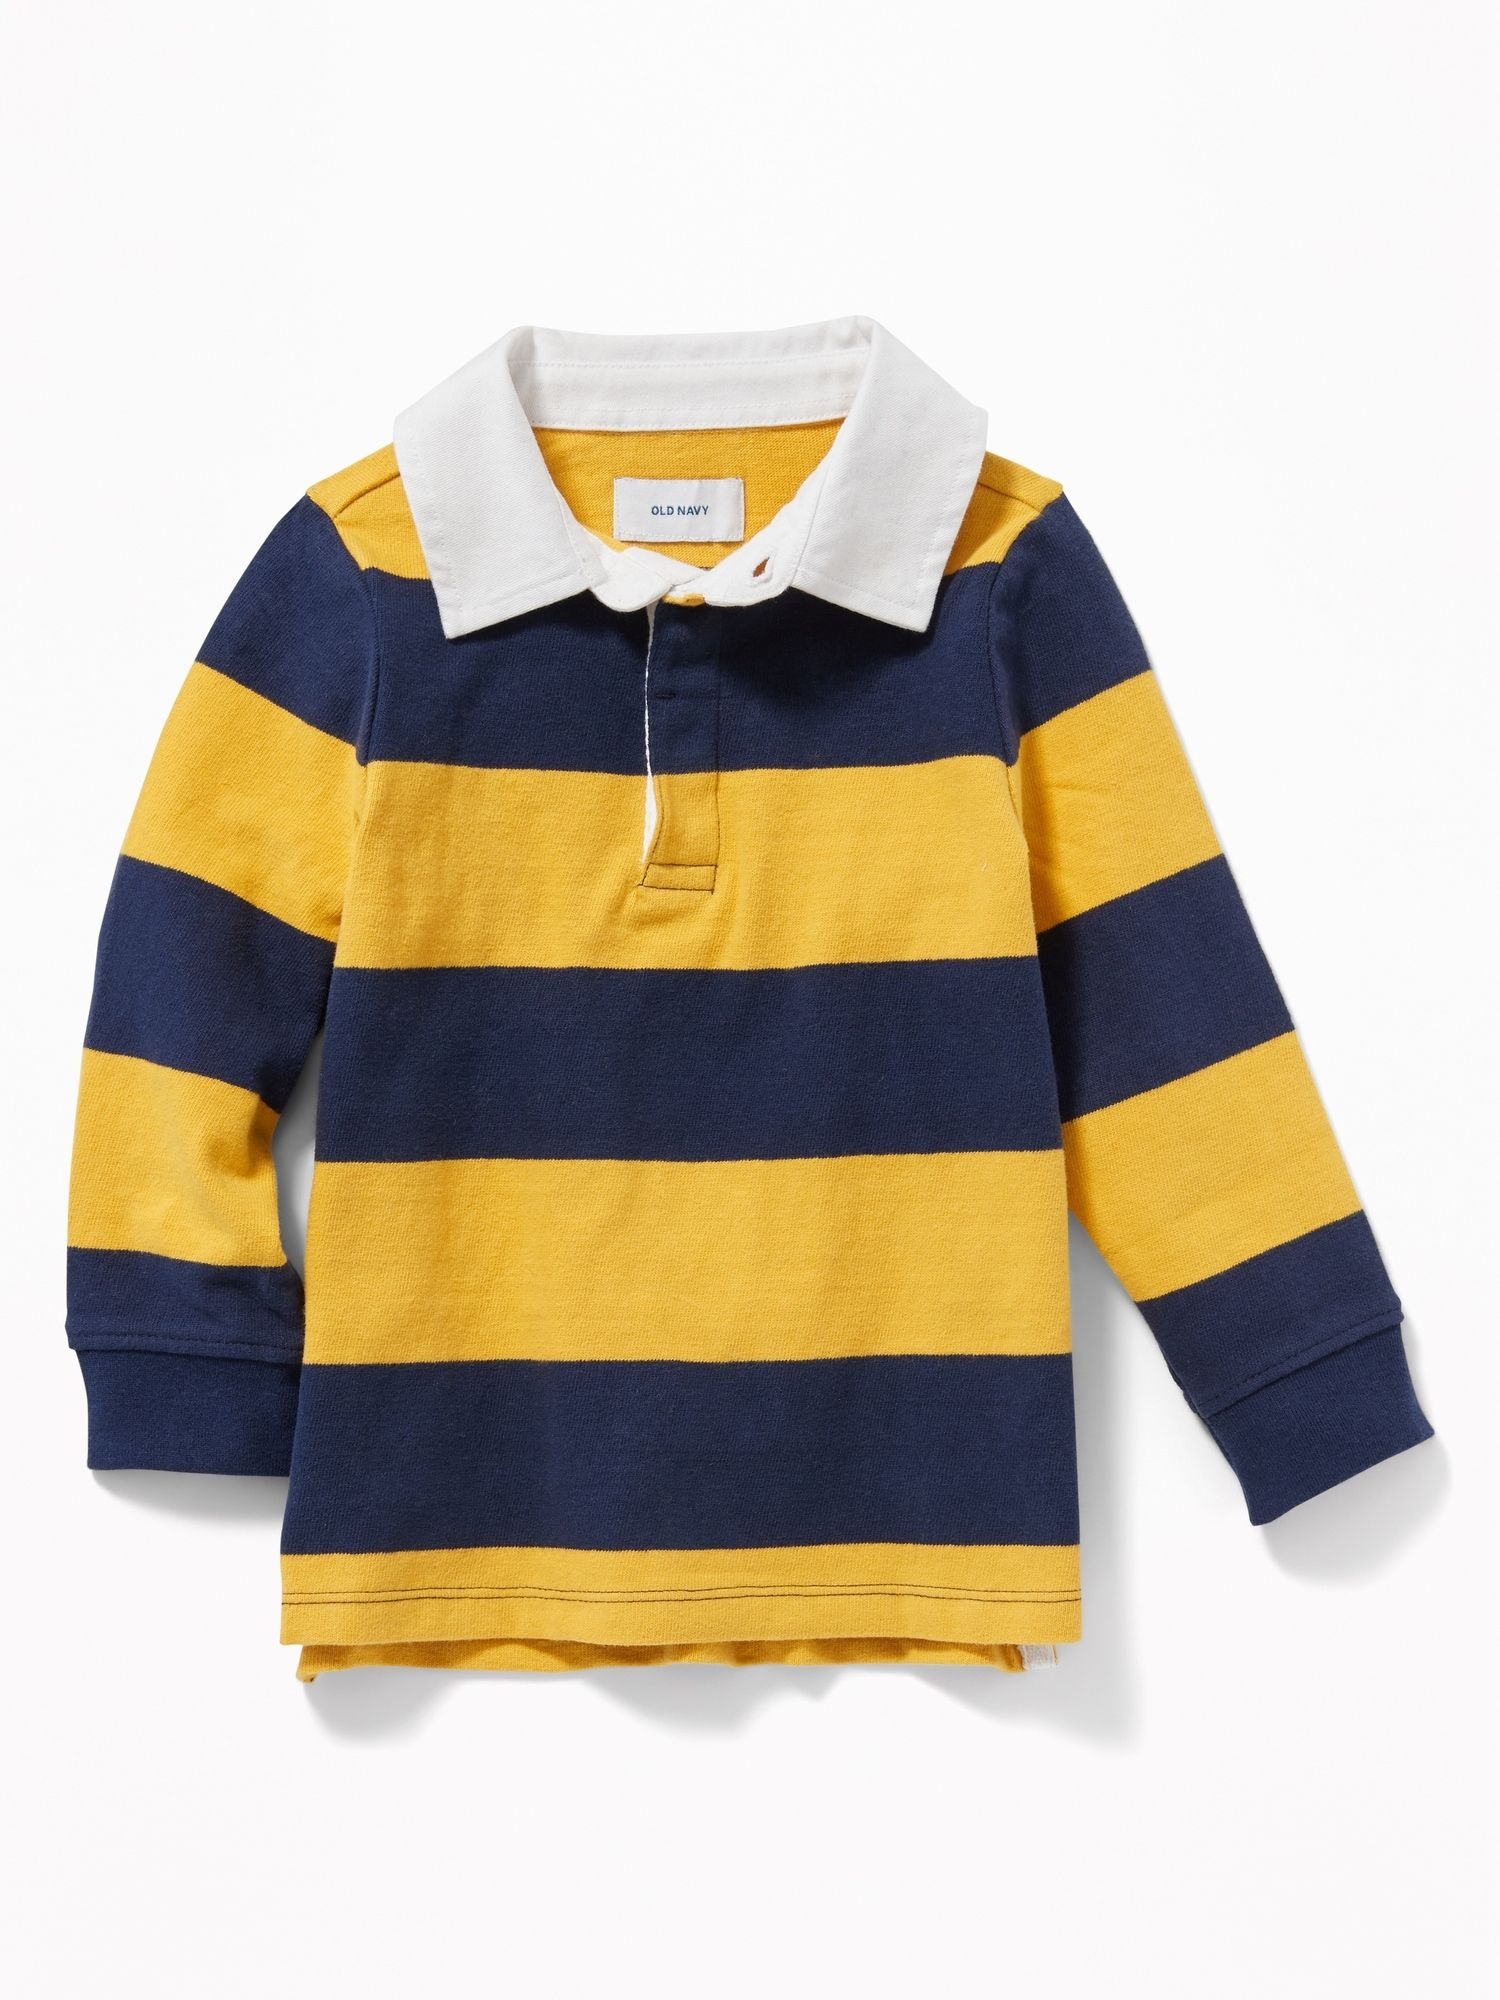 571a7ef6e product Toddler Boys, Stripes, Men Sweater, Collars, Polo, Pullover,  Knitting